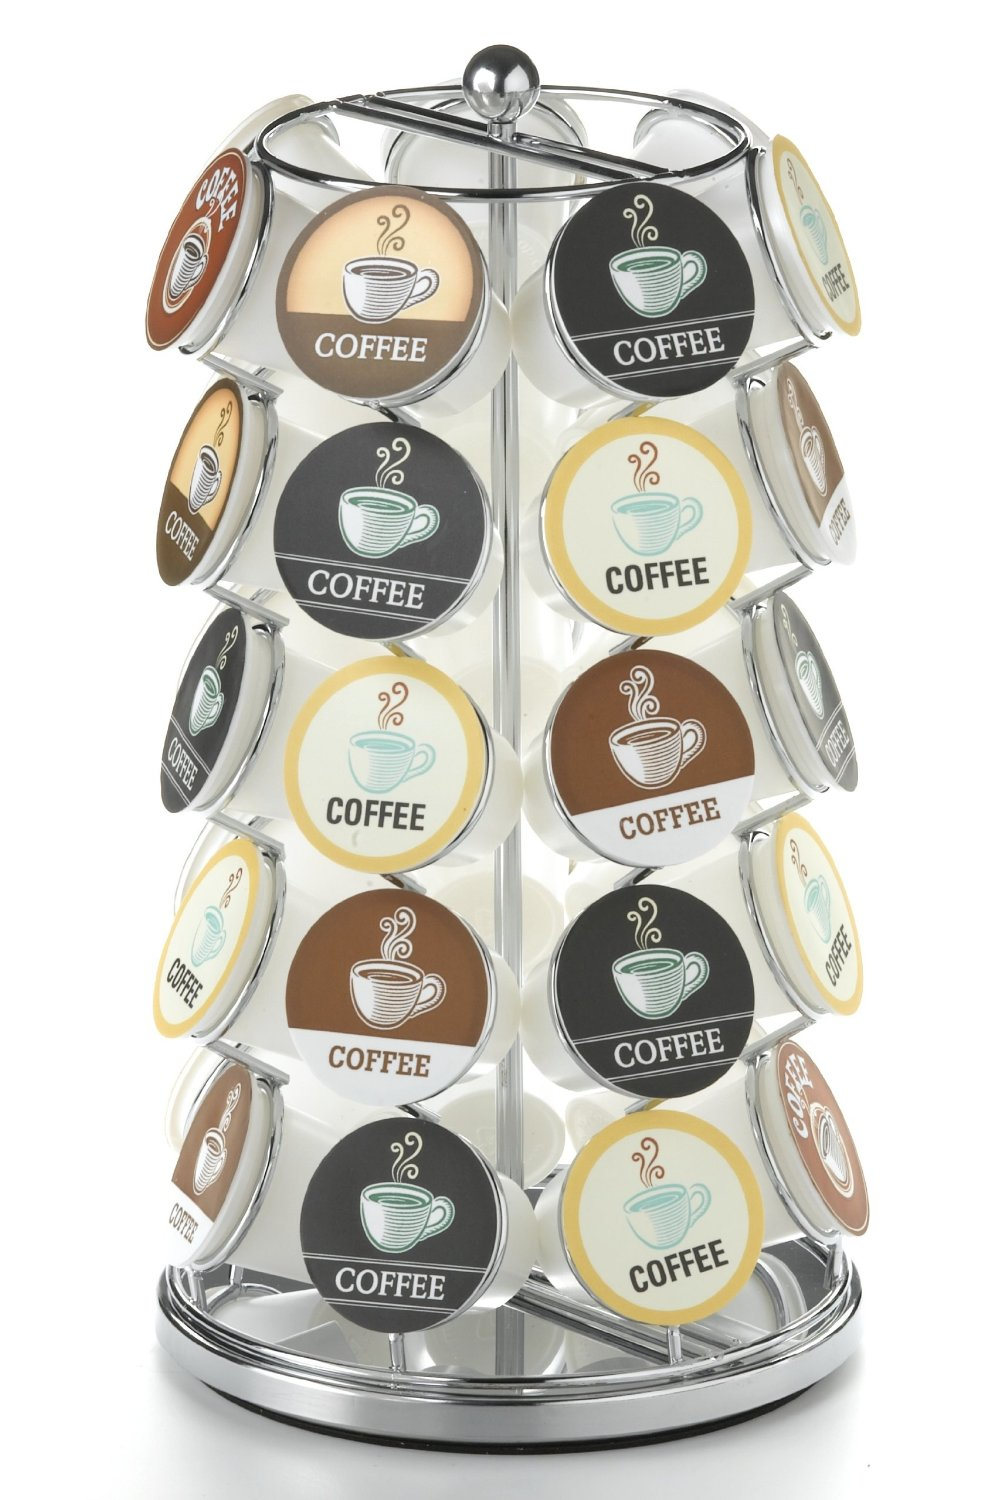 5 Best K Cup Carousel Perfect Way To Display Your K Cups Tool